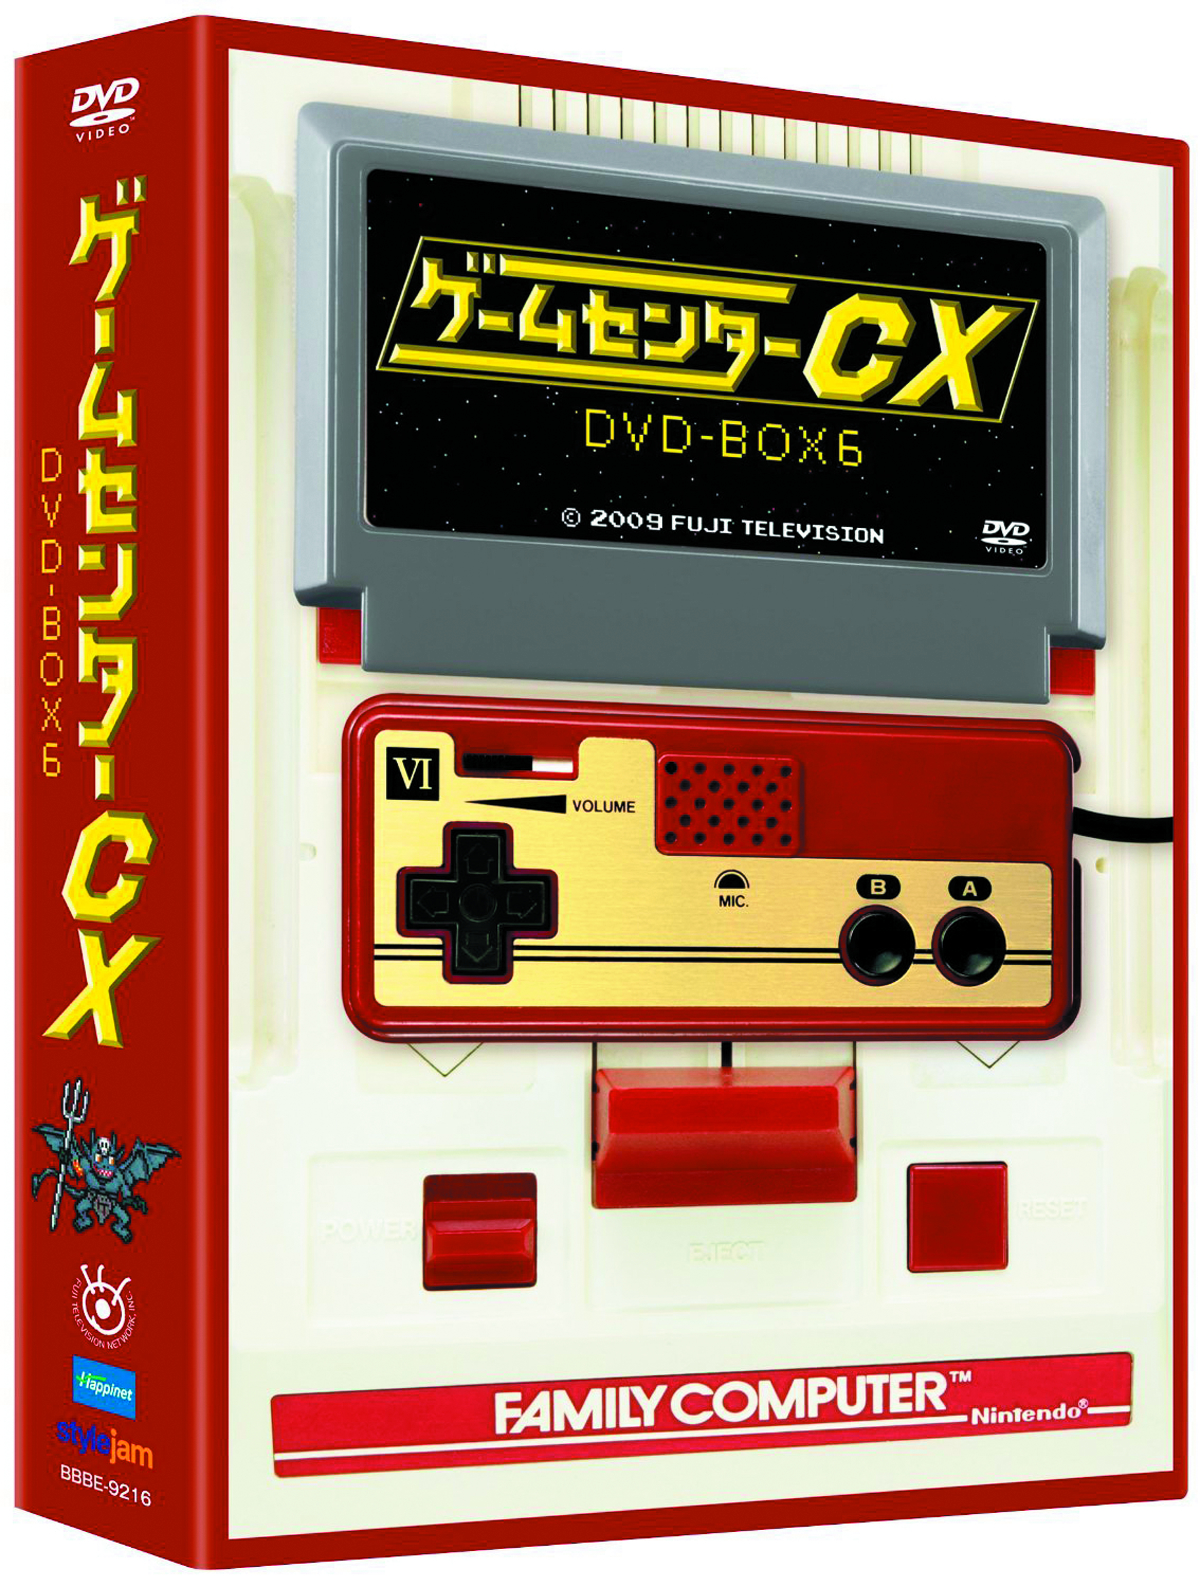 RETRO GAME MASTER GAME CENTER CX COLL DVD